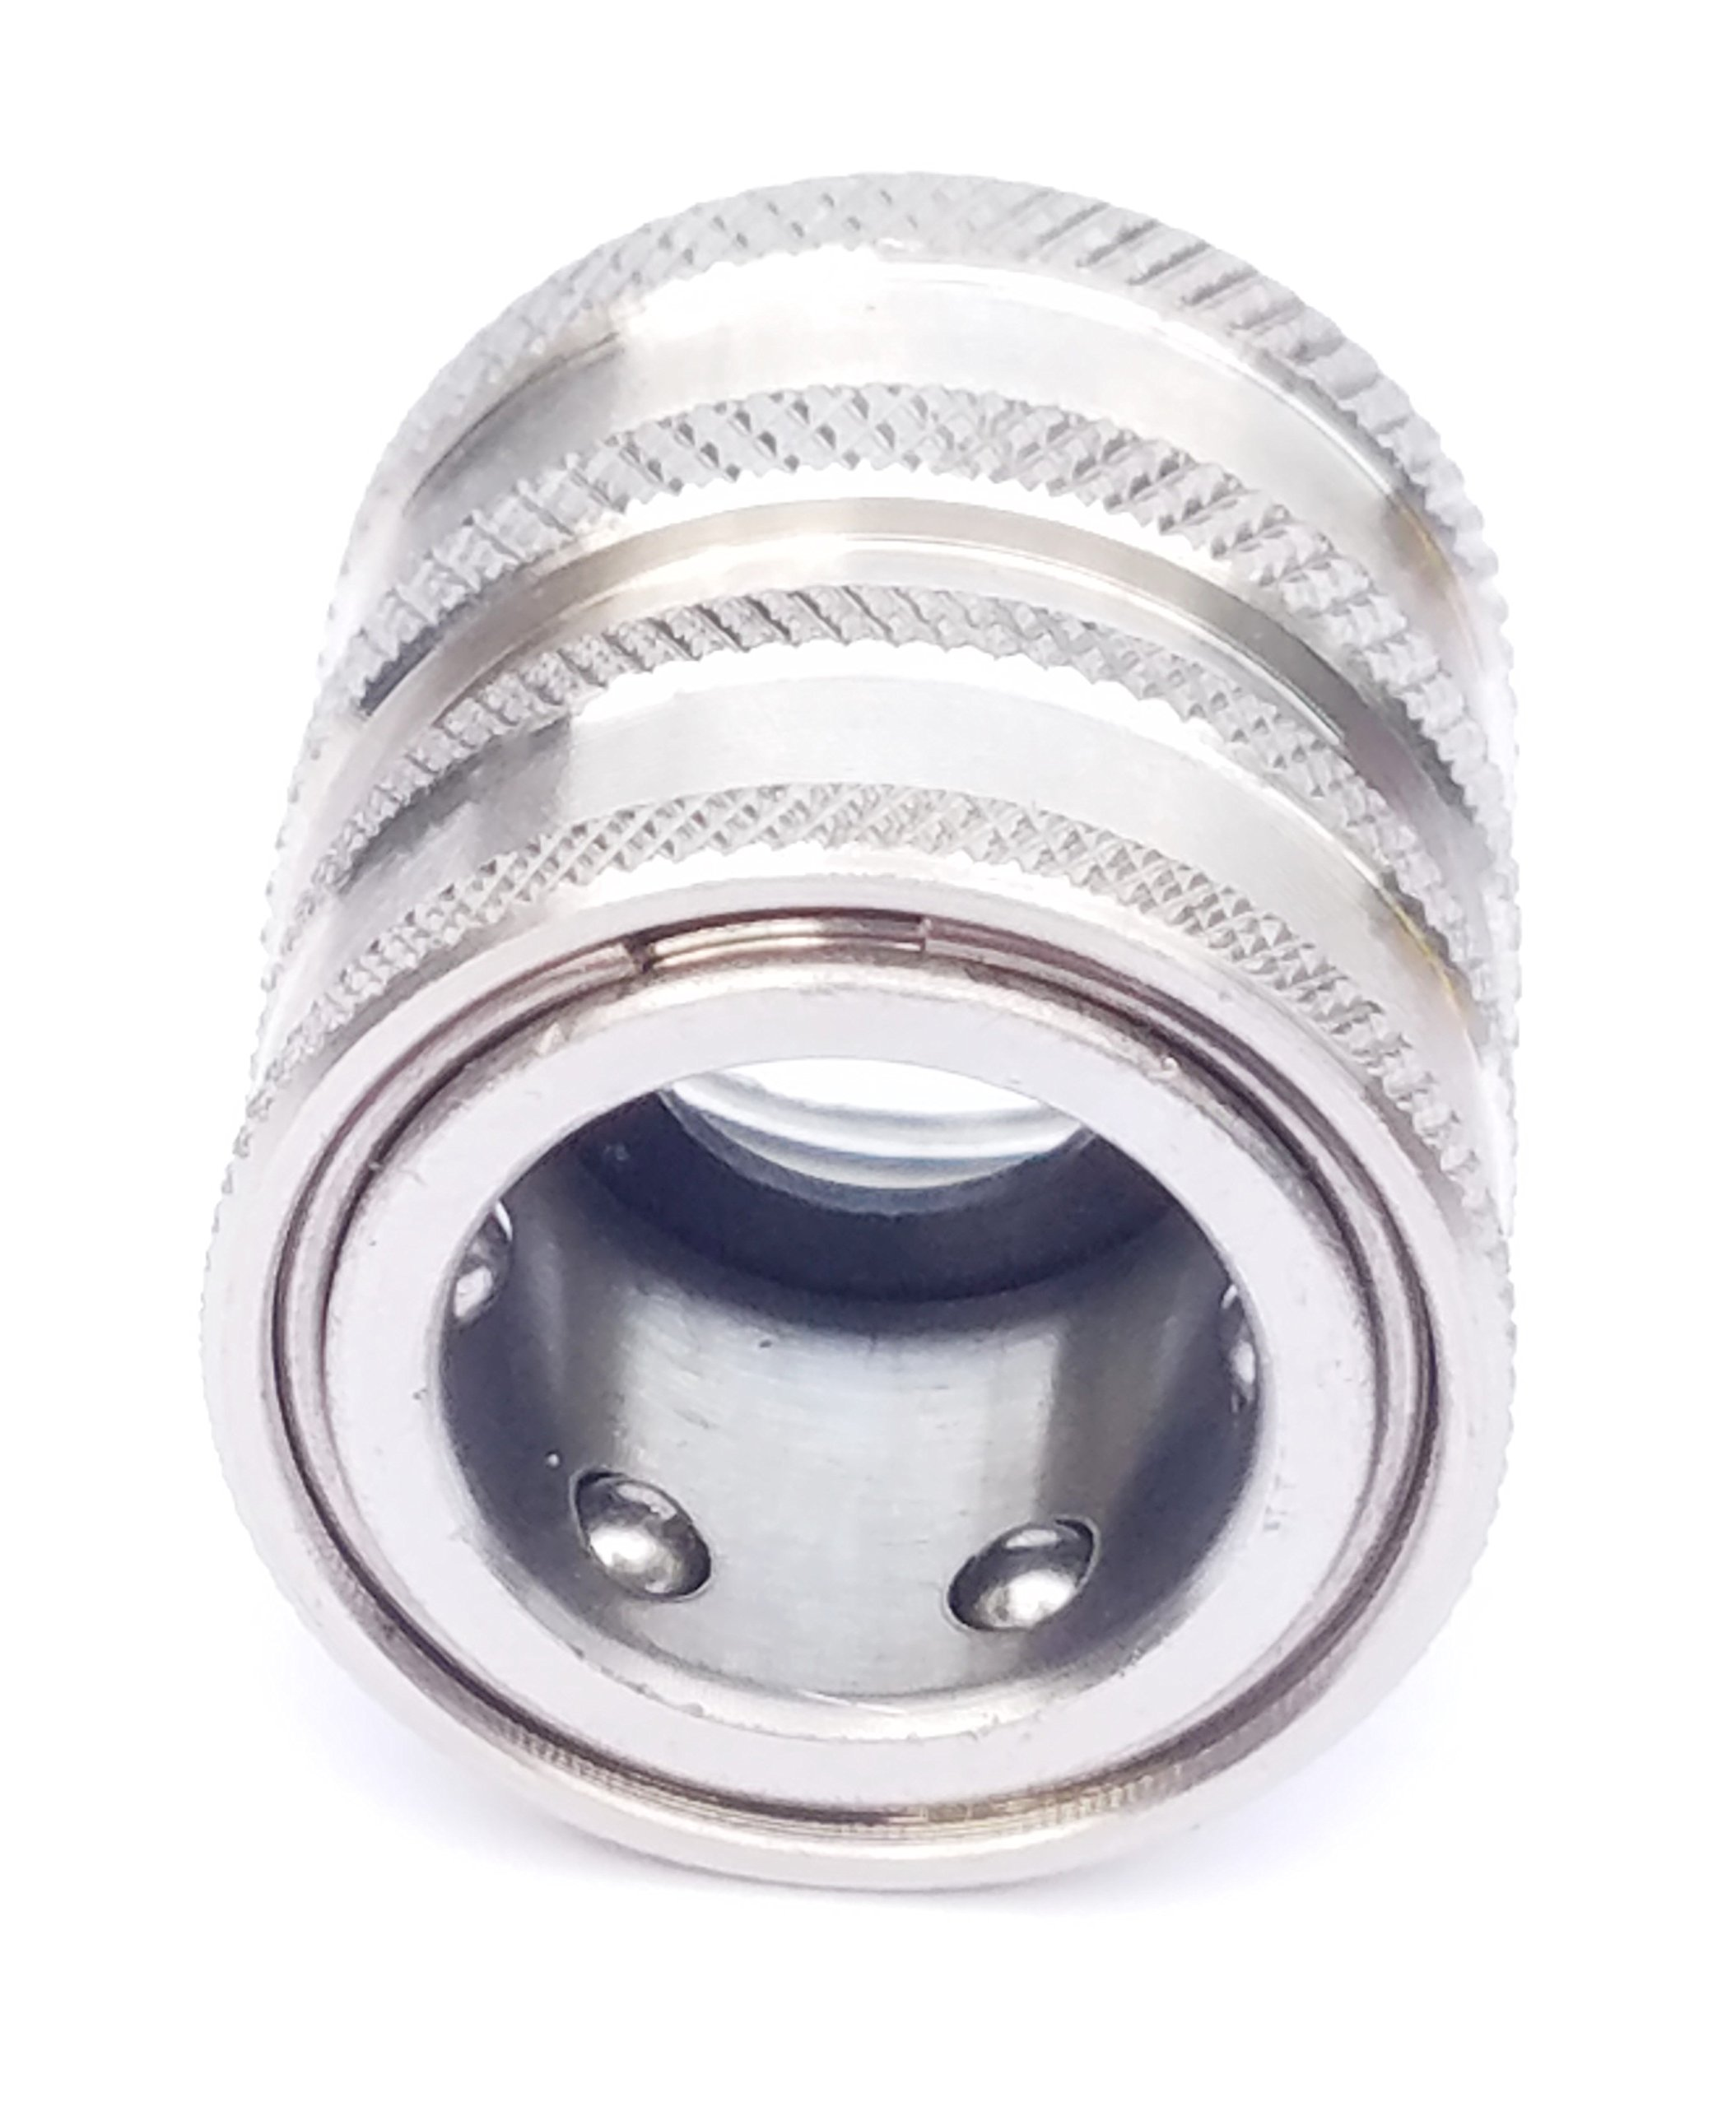 Sellerocity Brand Pressure Washer Quick Connect 1/2'' Female Socket X 3/4'' Female Garden Hose Connector, Replaces General D10012 by Sellerocity